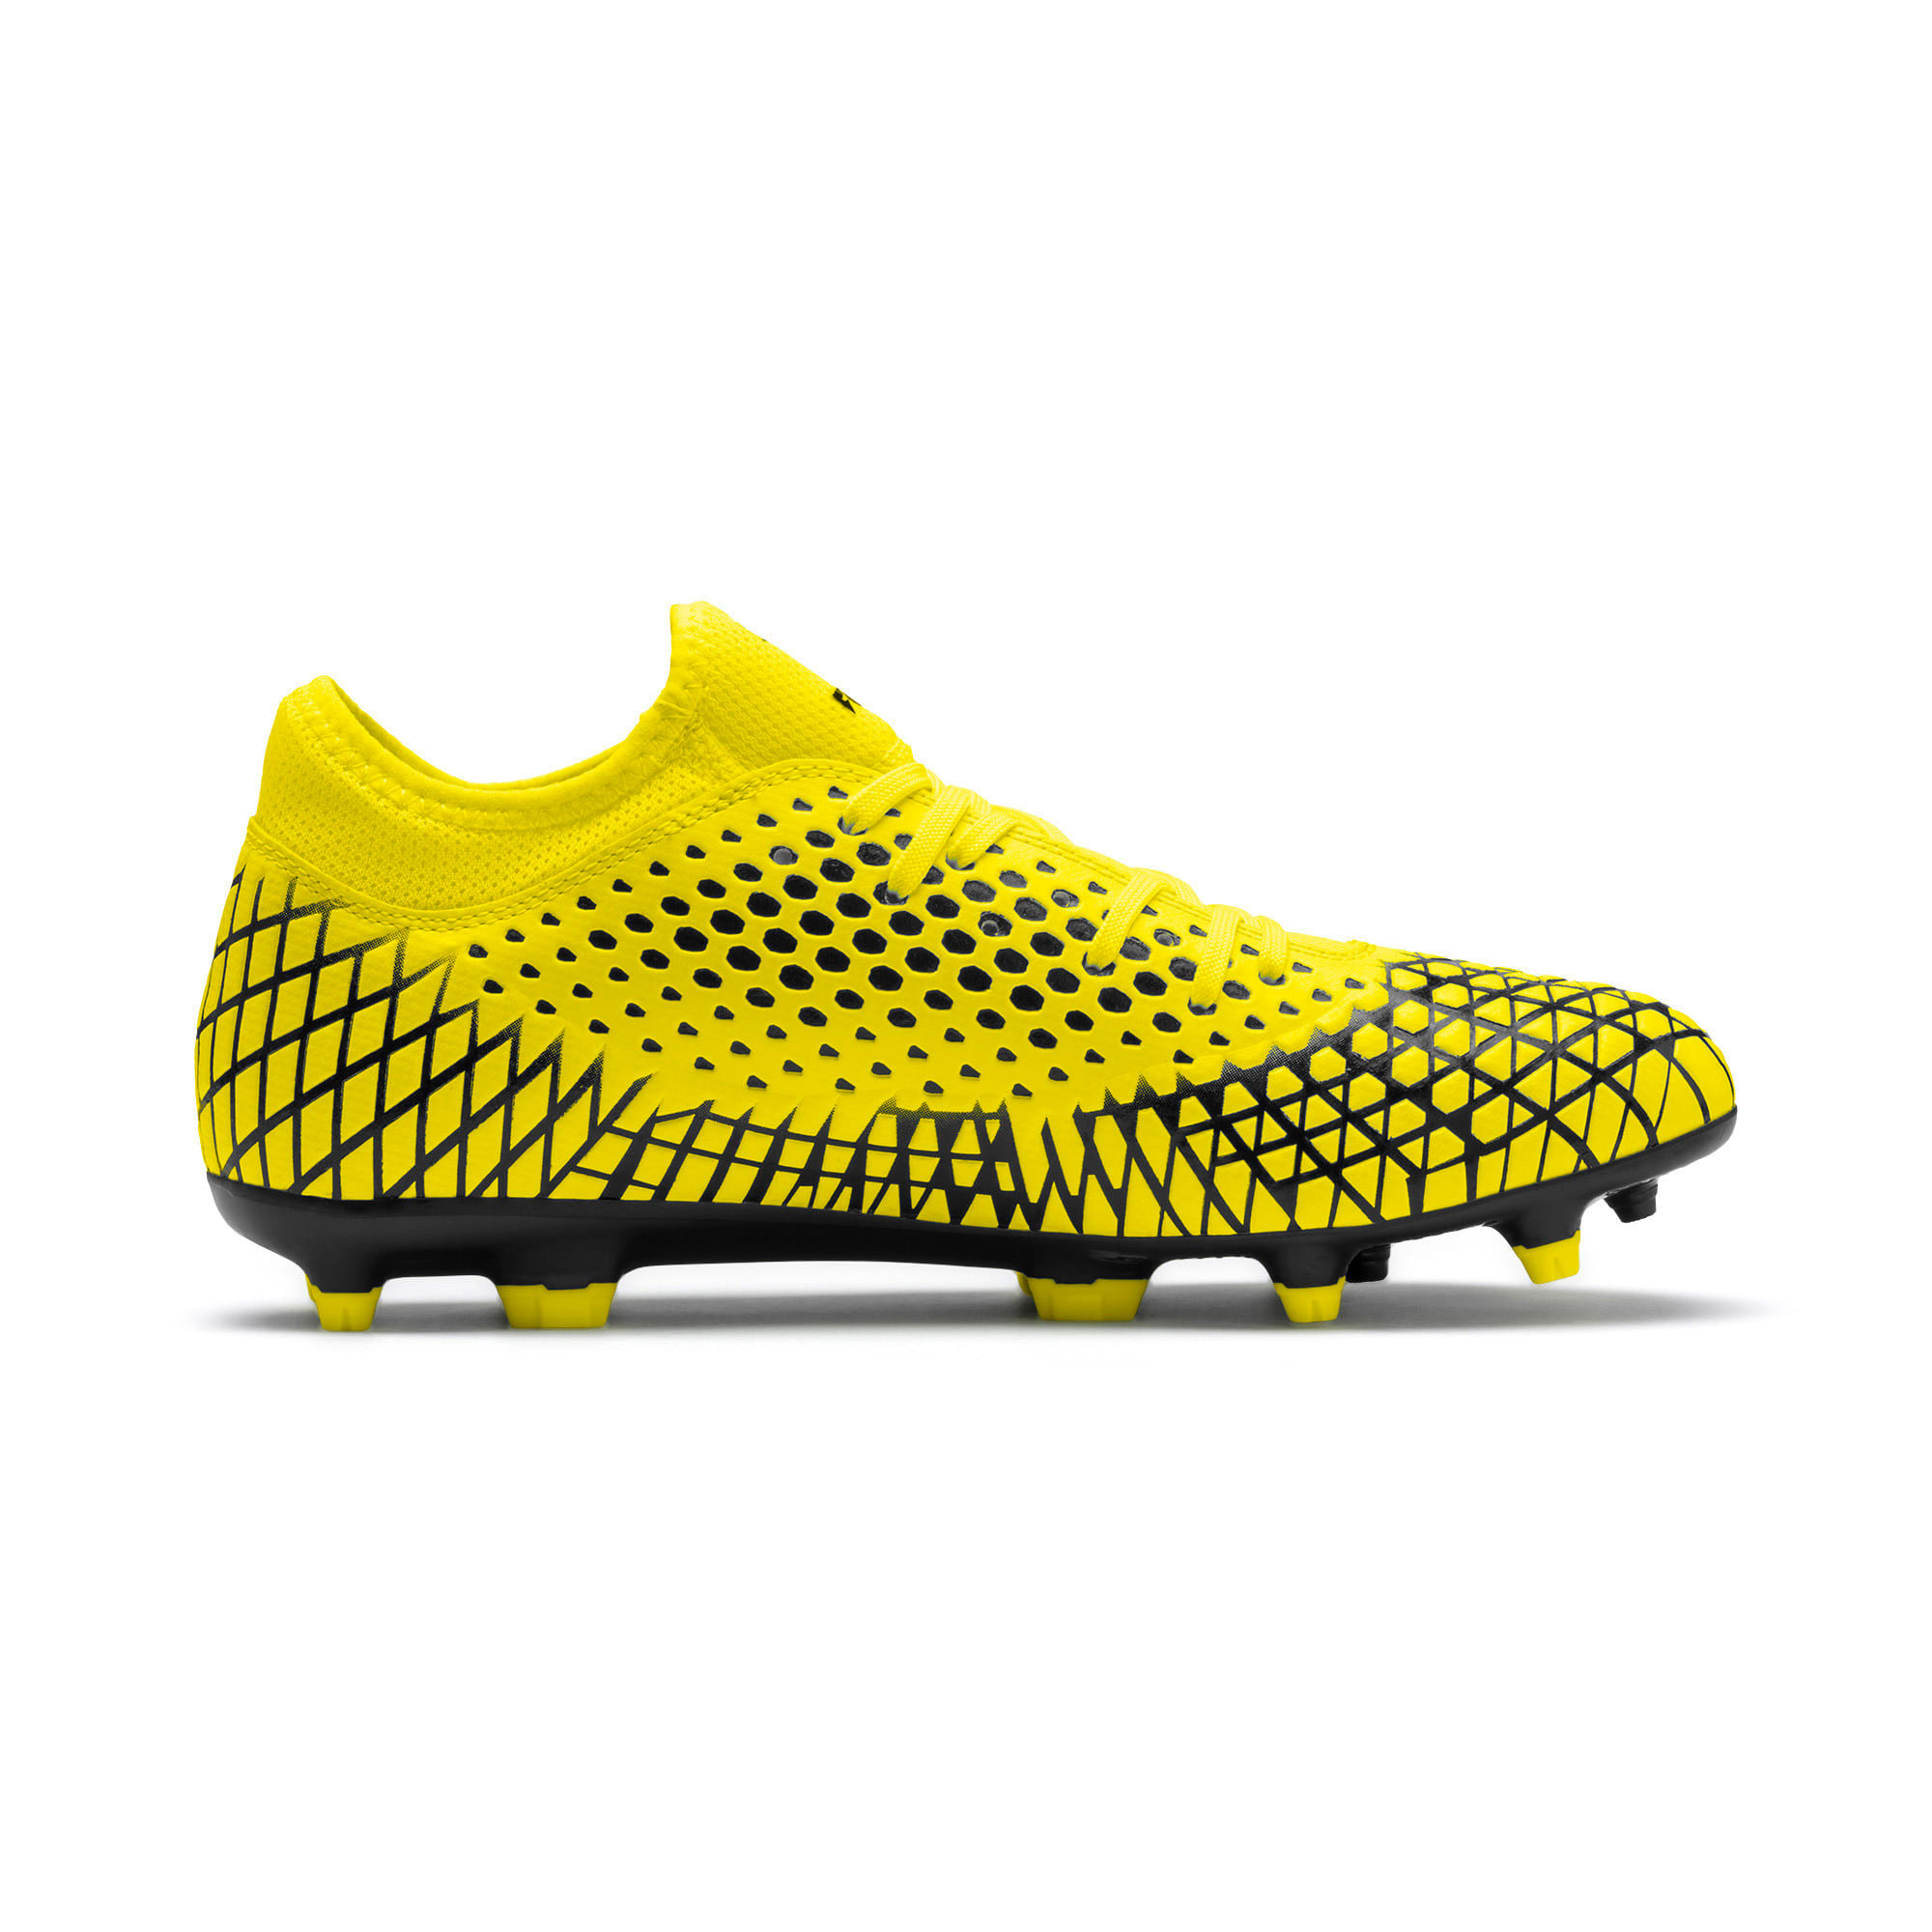 Thumbnail 6 of FUTURE 4.4 FG/AG Men's Football Boots, Yellow Alert-Puma Black, medium